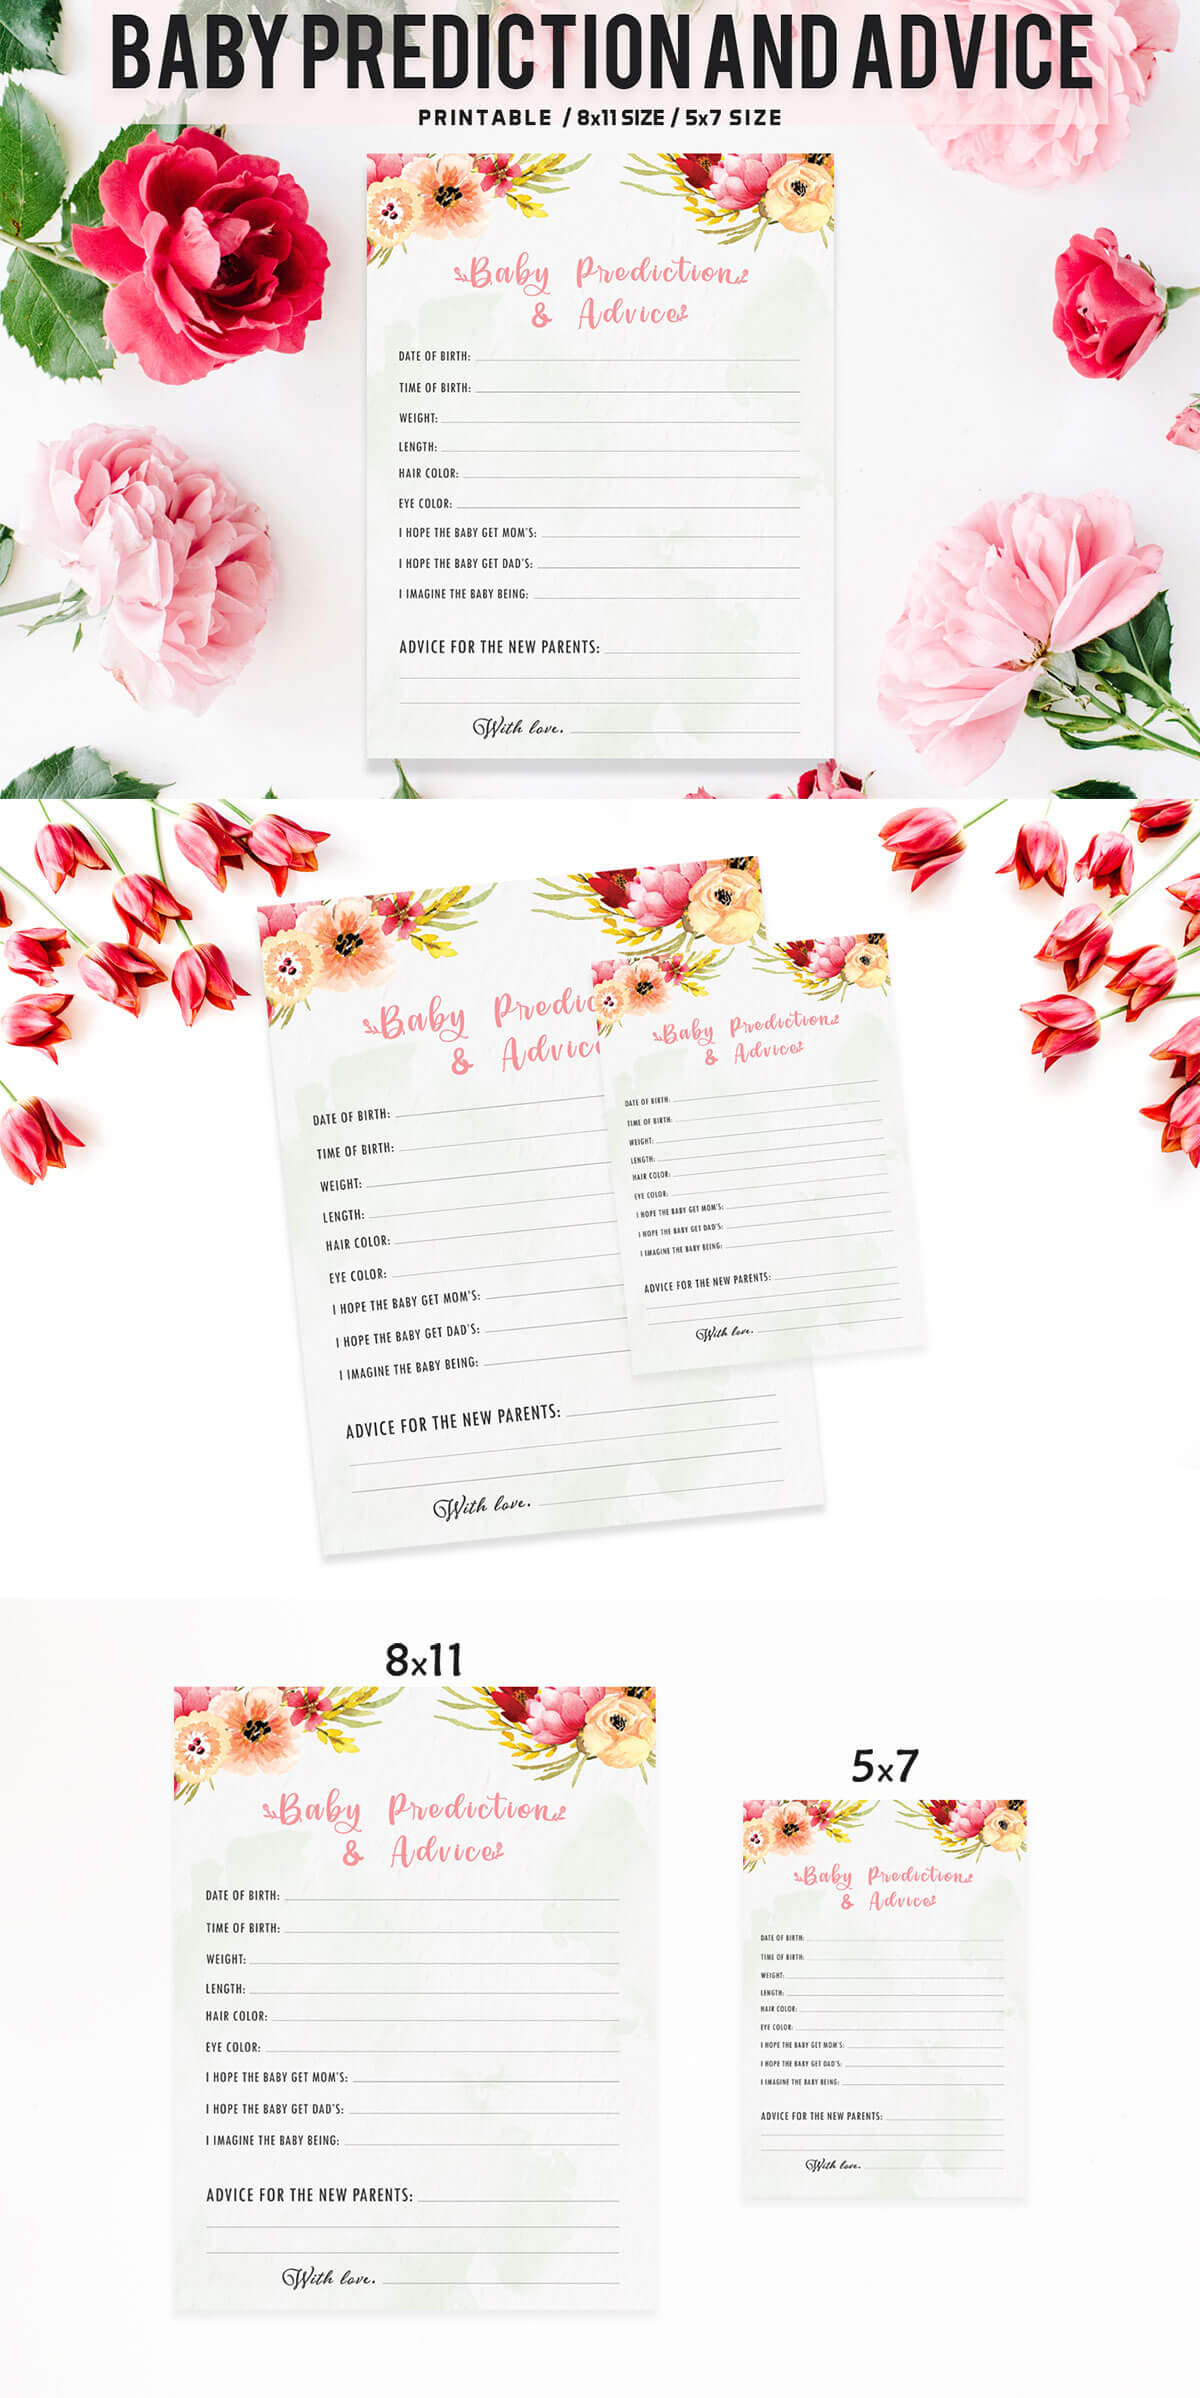 Free Floral Baby Prediction And Advice Printable Template V2